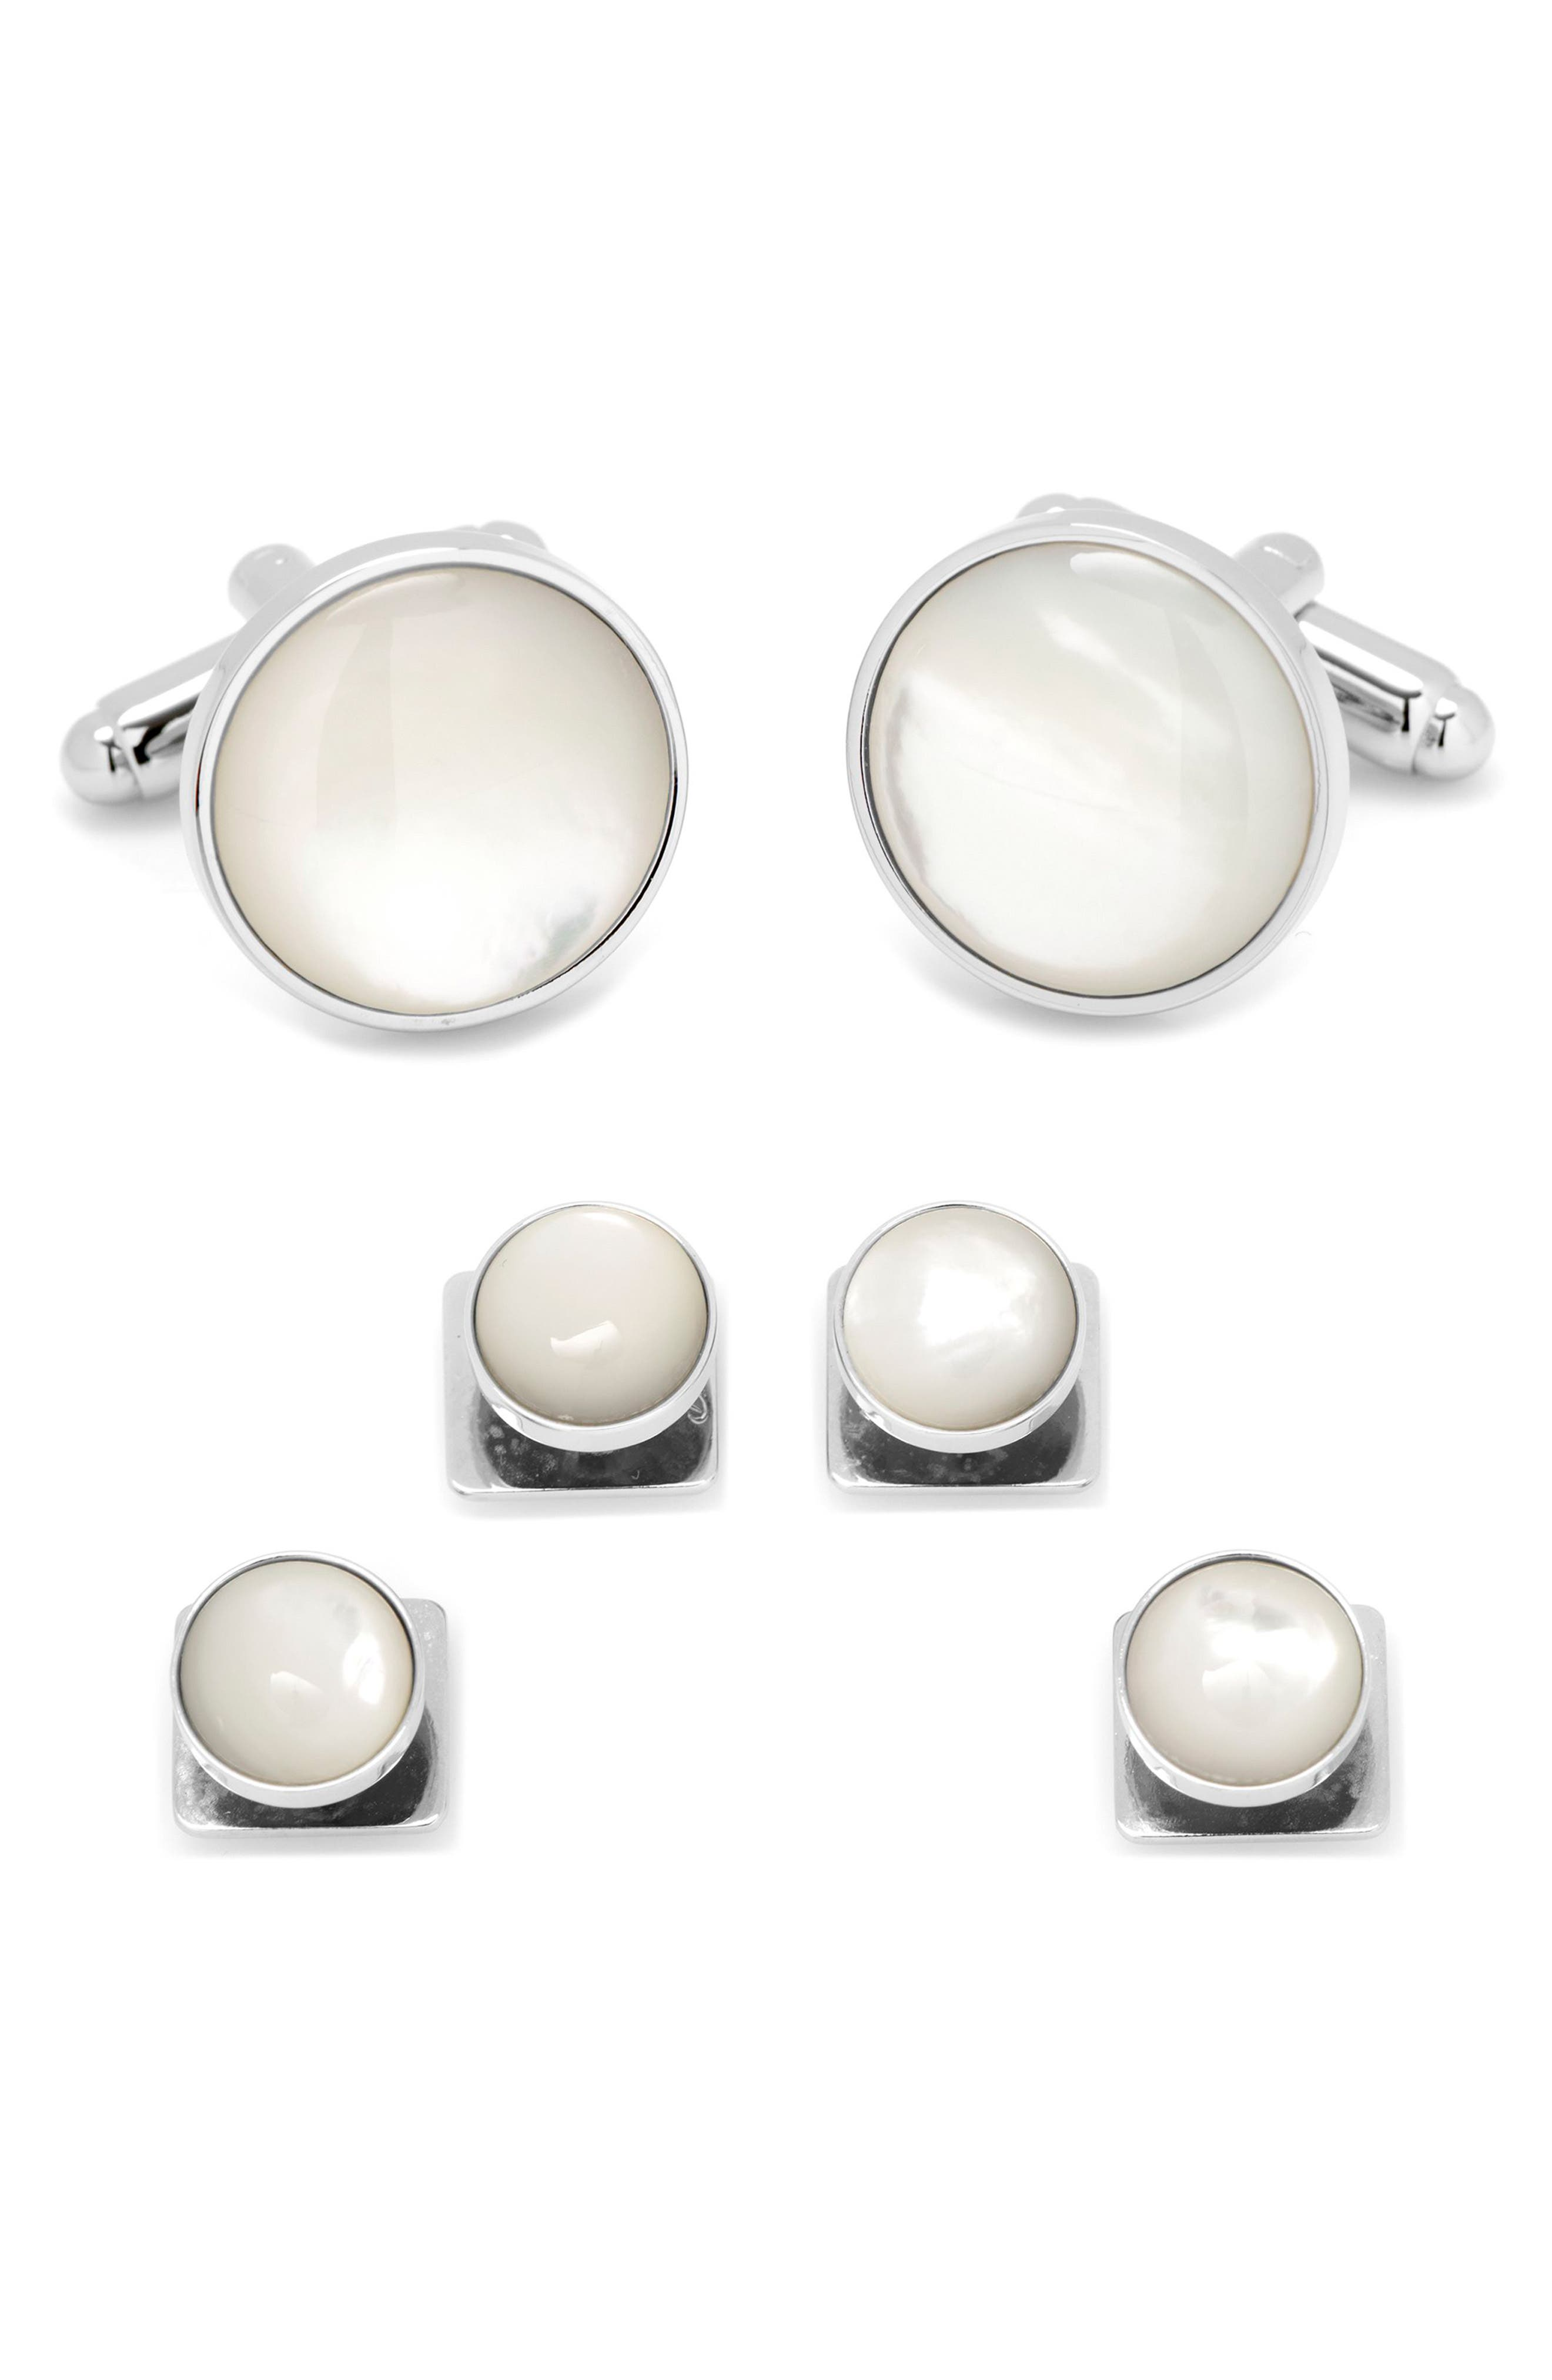 1920s Mens Evening Wear Step By Step Mens Cufflinks Inc. Mother Of Pearl Cuff Link  Stud Set $95.00 AT vintagedancer.com